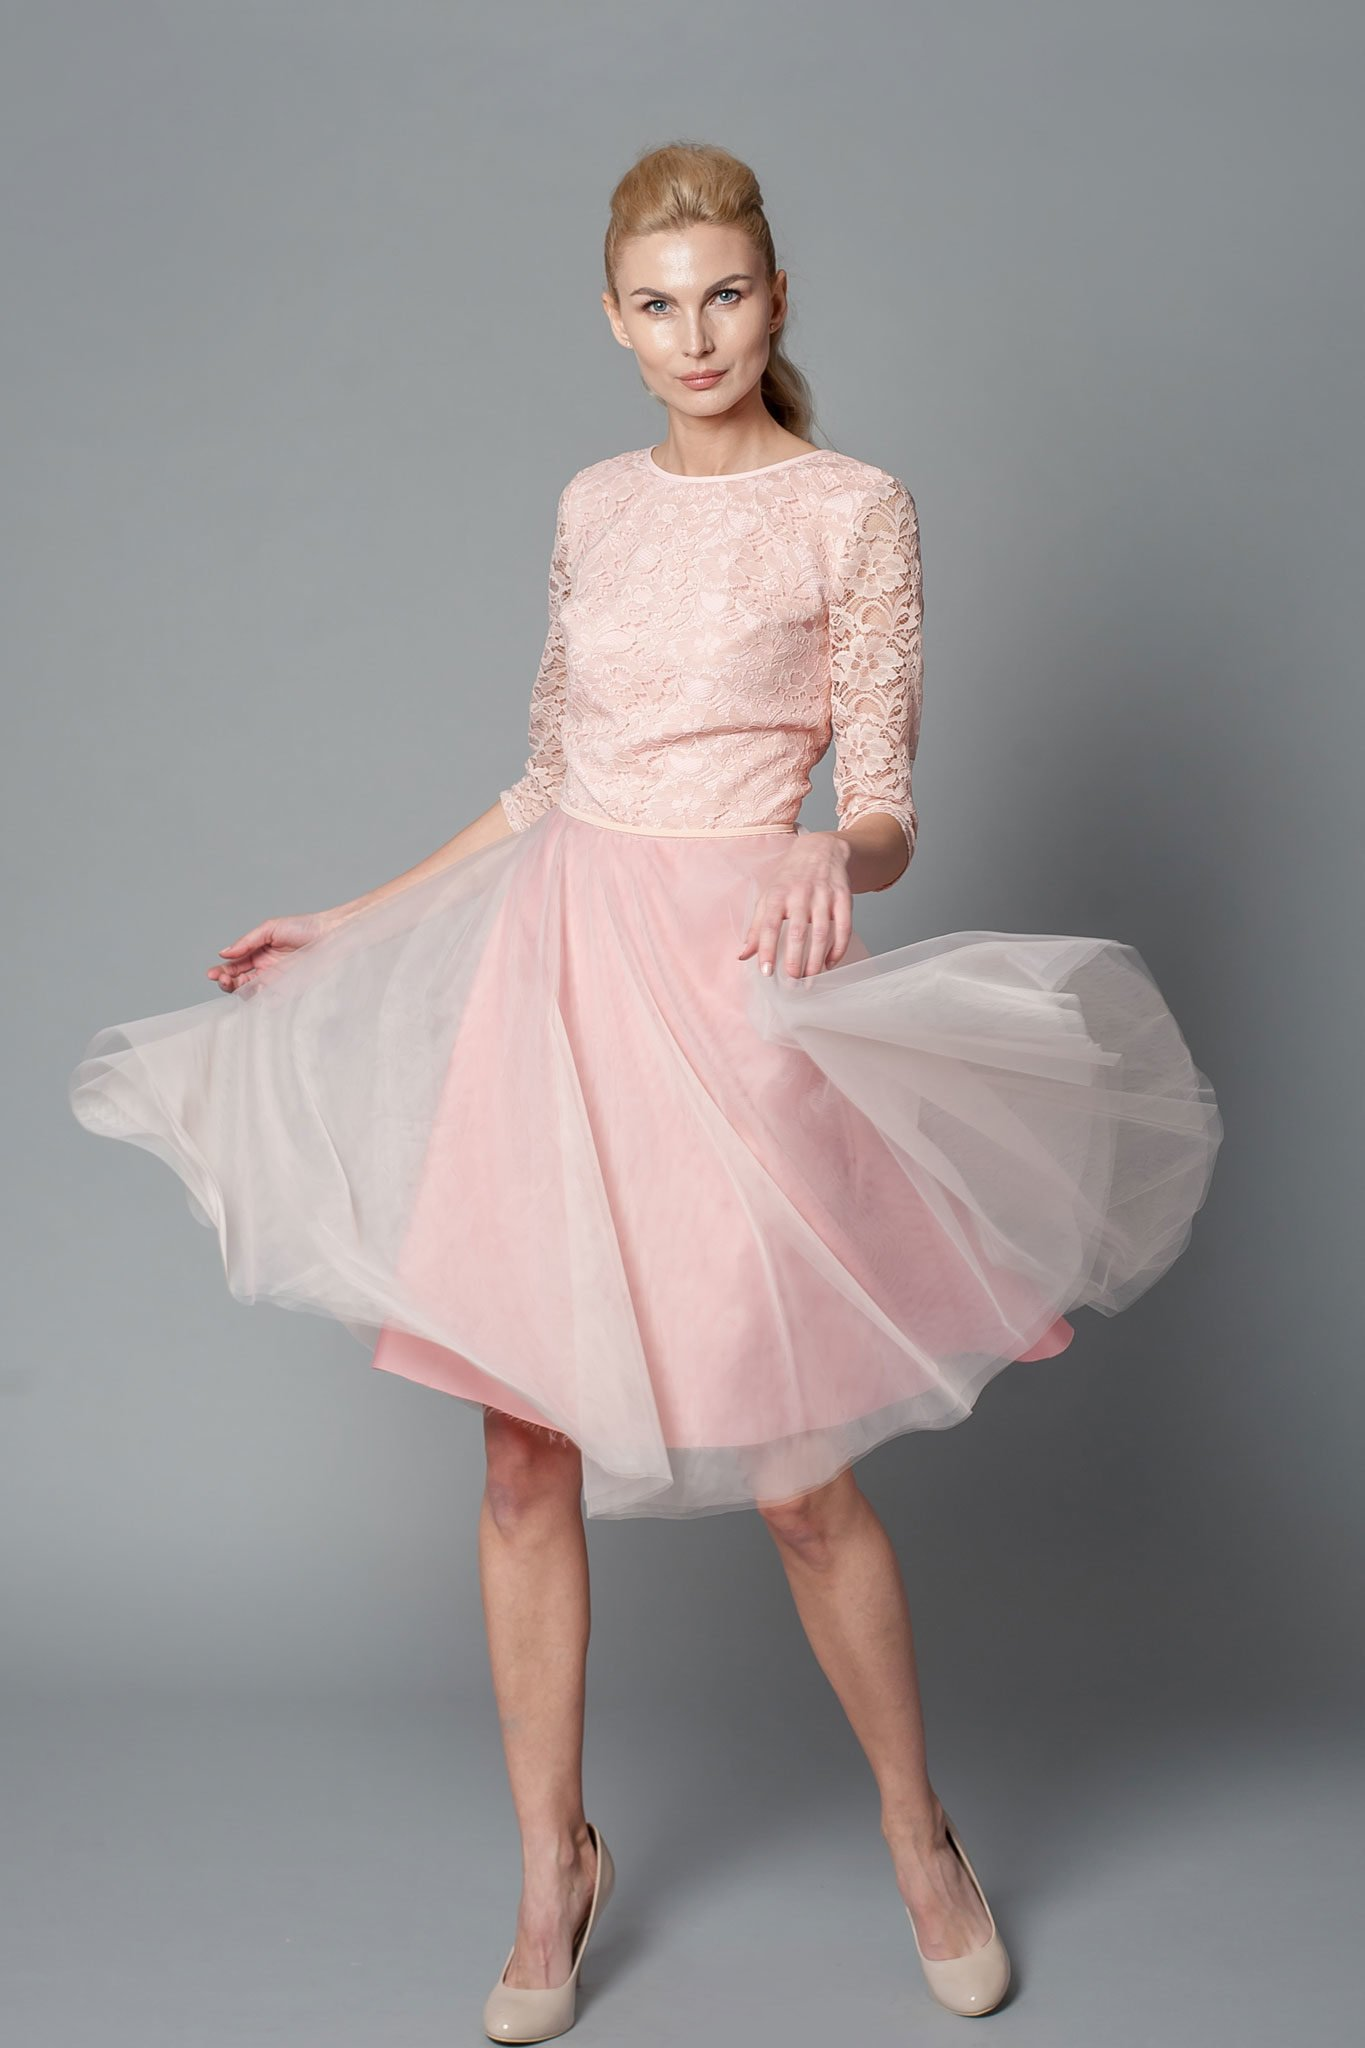 Prom blush pink dress with mid-length sleeves